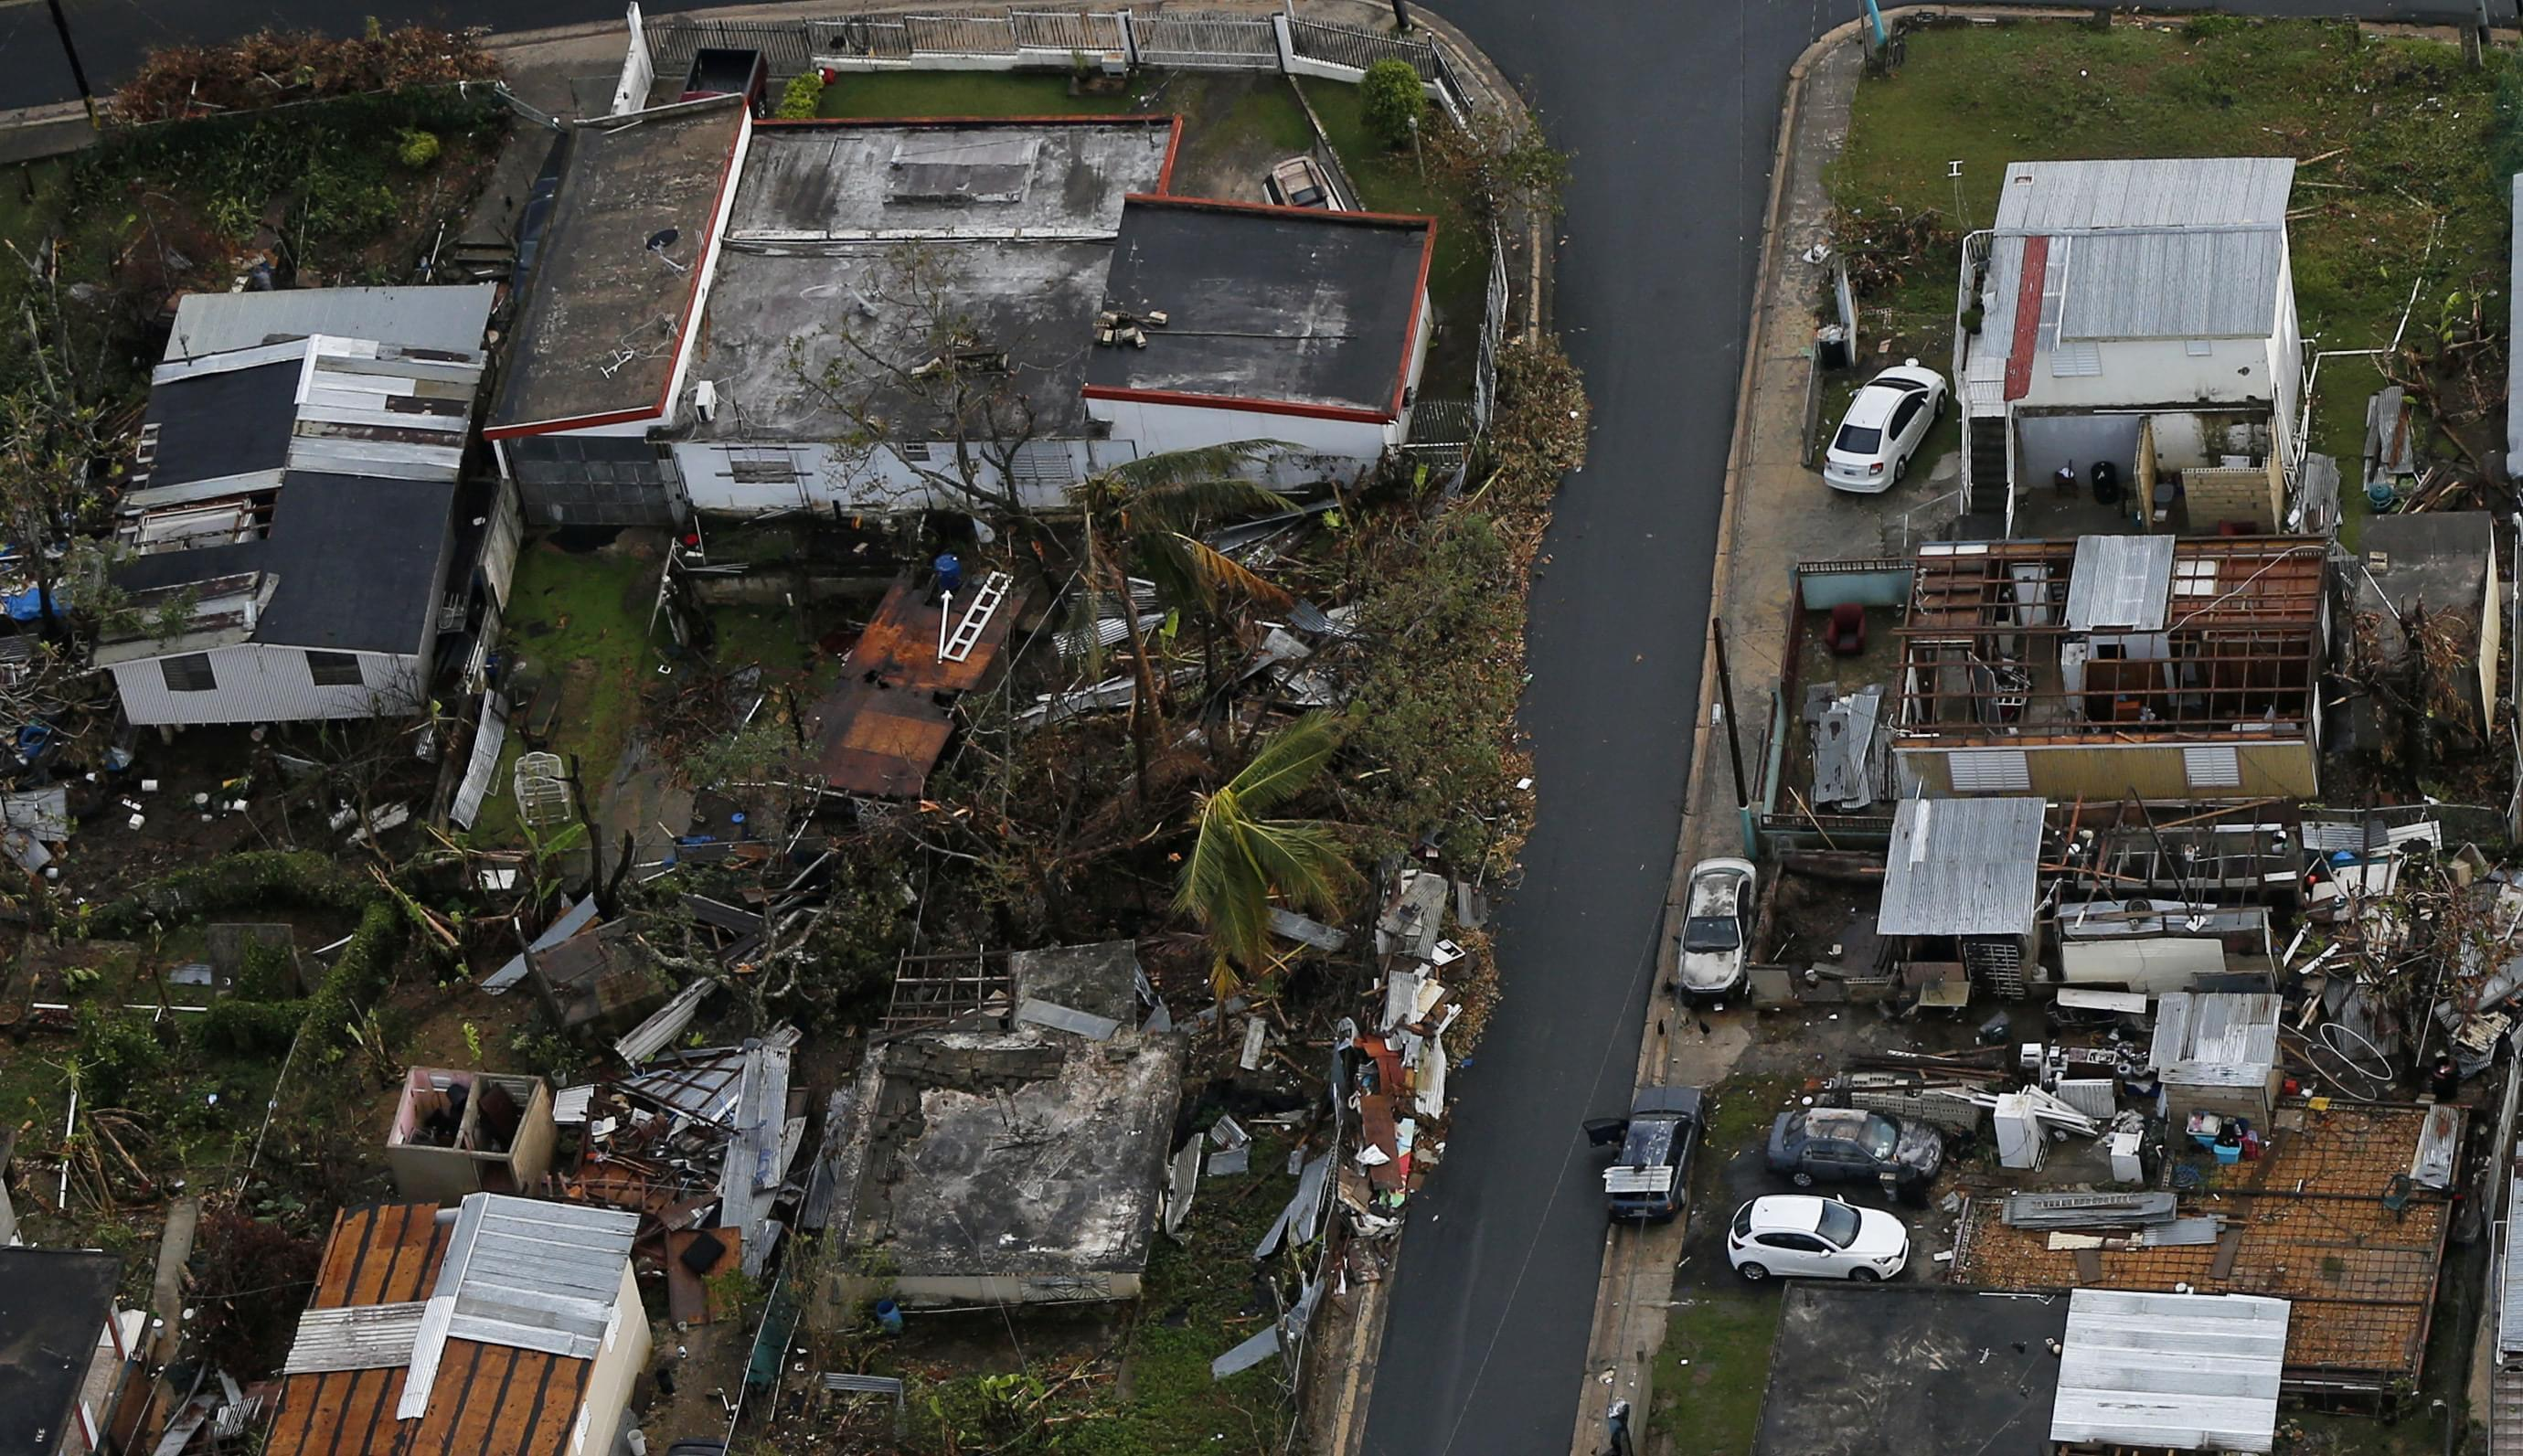 Damage done in Puerto Rico by Hurricane Maria